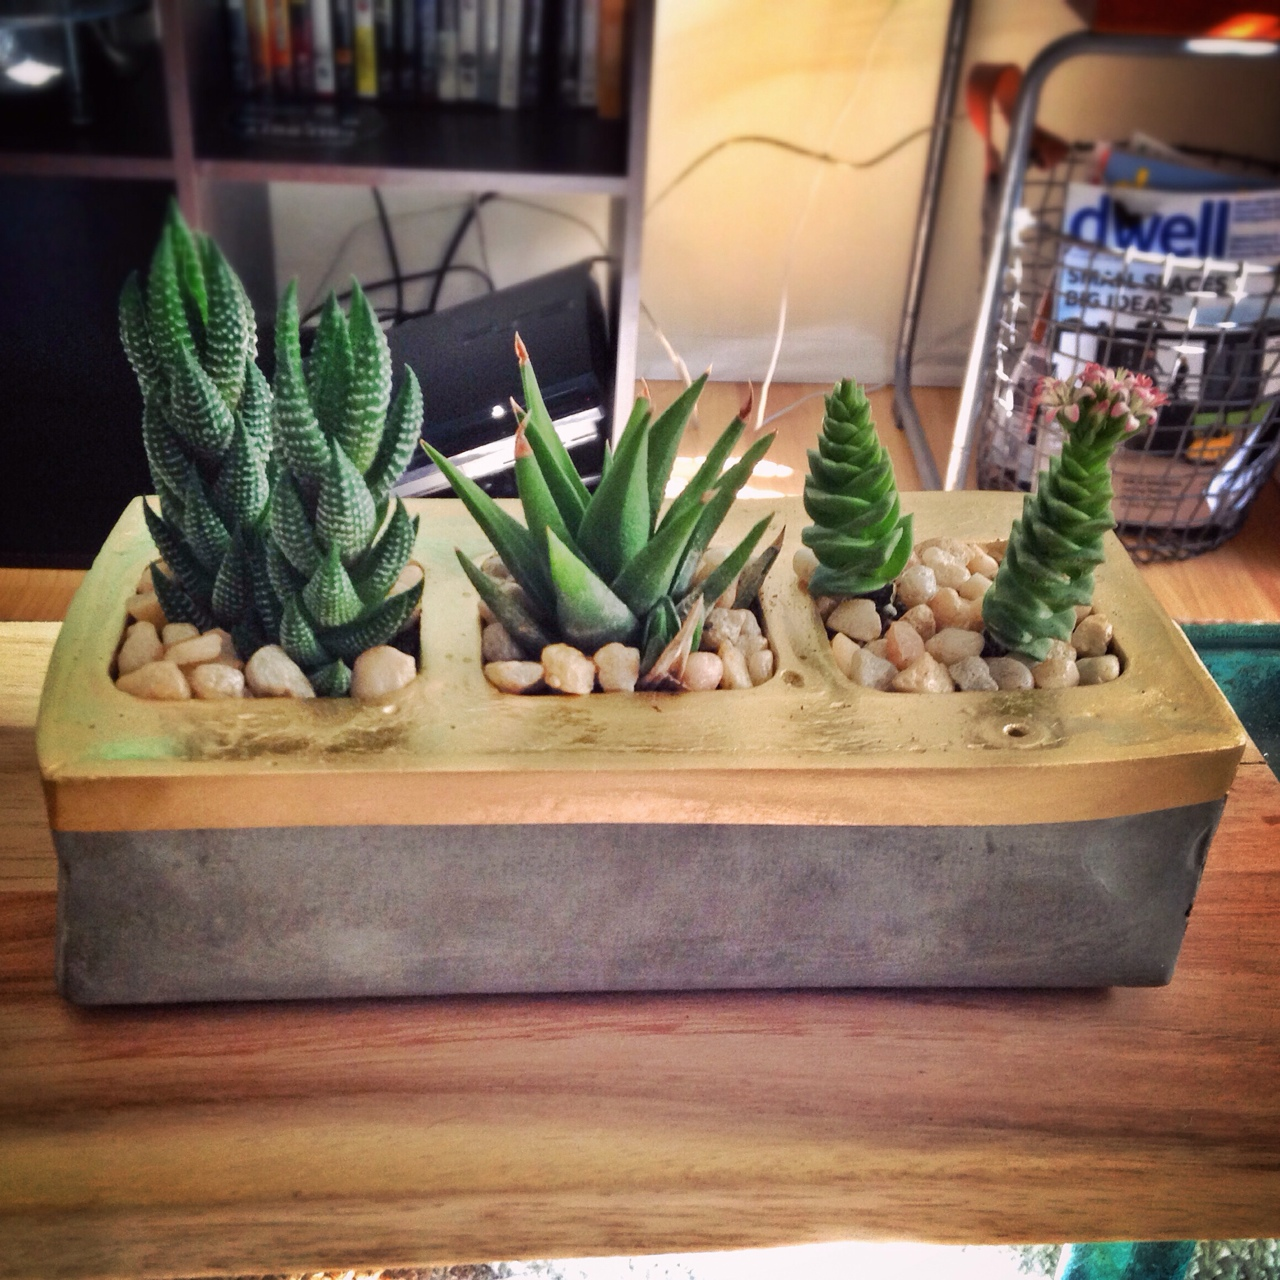 Made this concrete planter for some mini succulents this weekend. Follow me on Instagram for more crazyyyyyy shenanigans http://instagram.com/grizzpiece